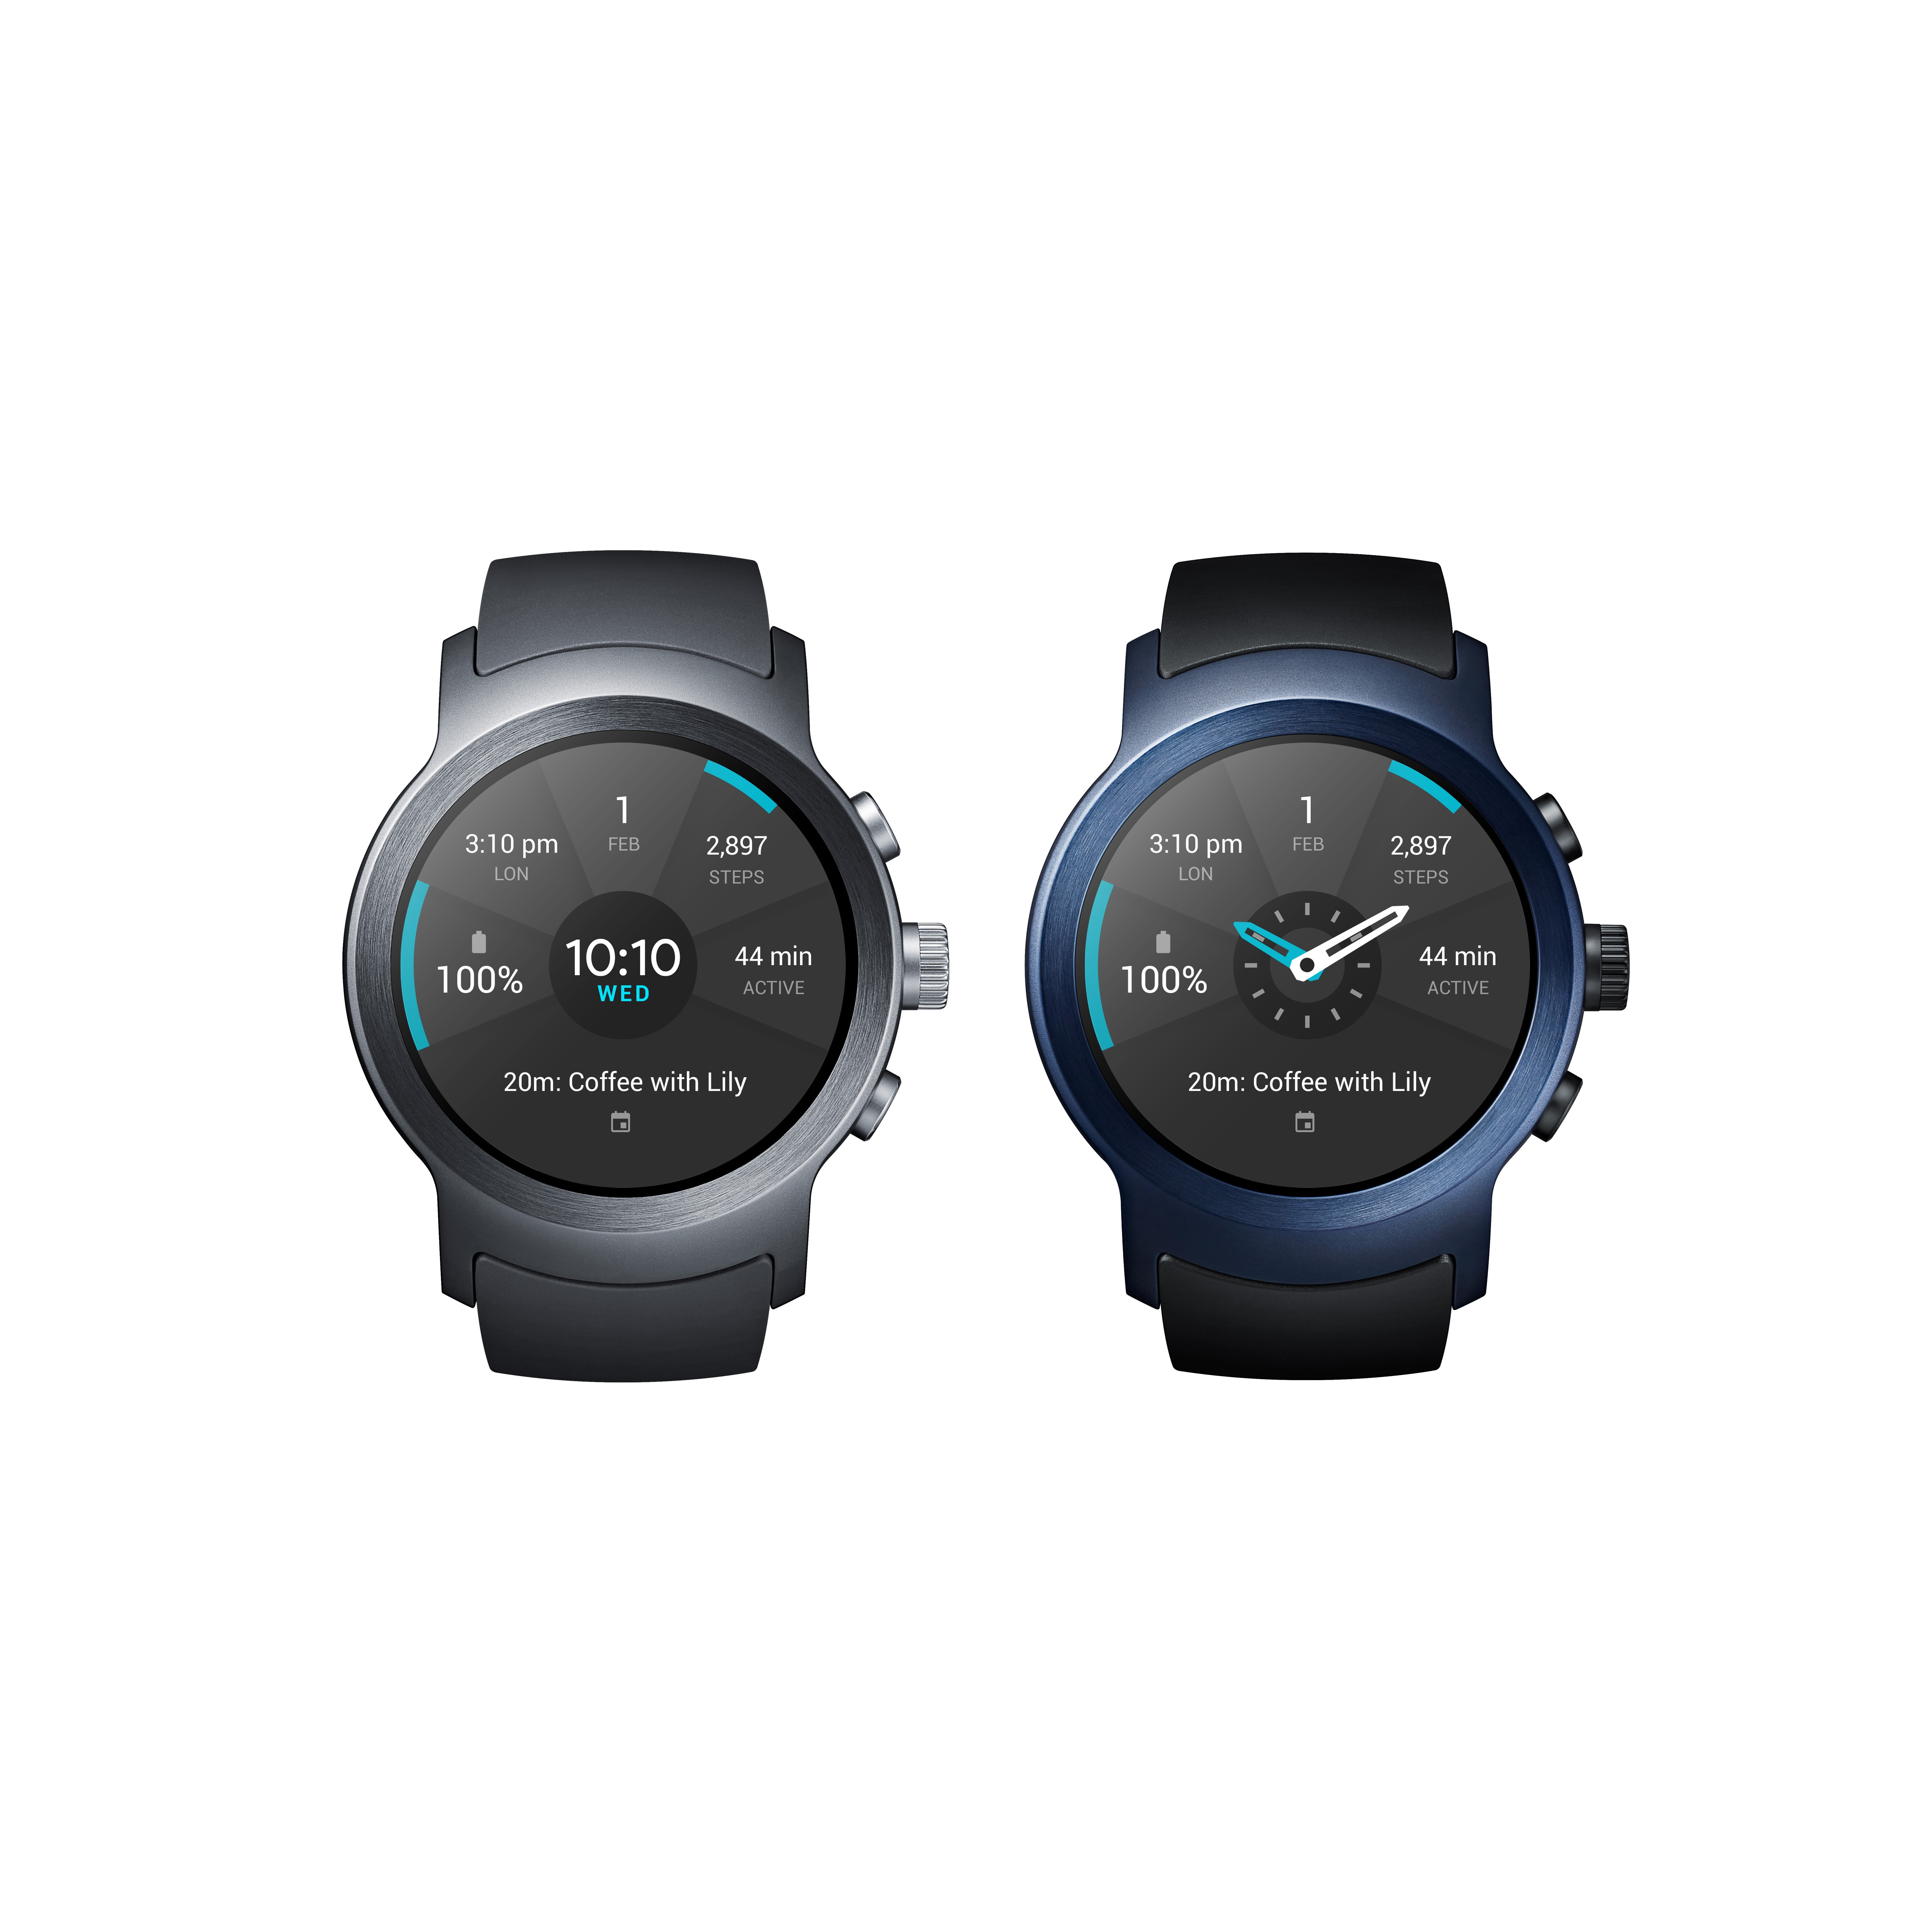 The front view of the LG Watch Sport in Titanium and Dark Blue